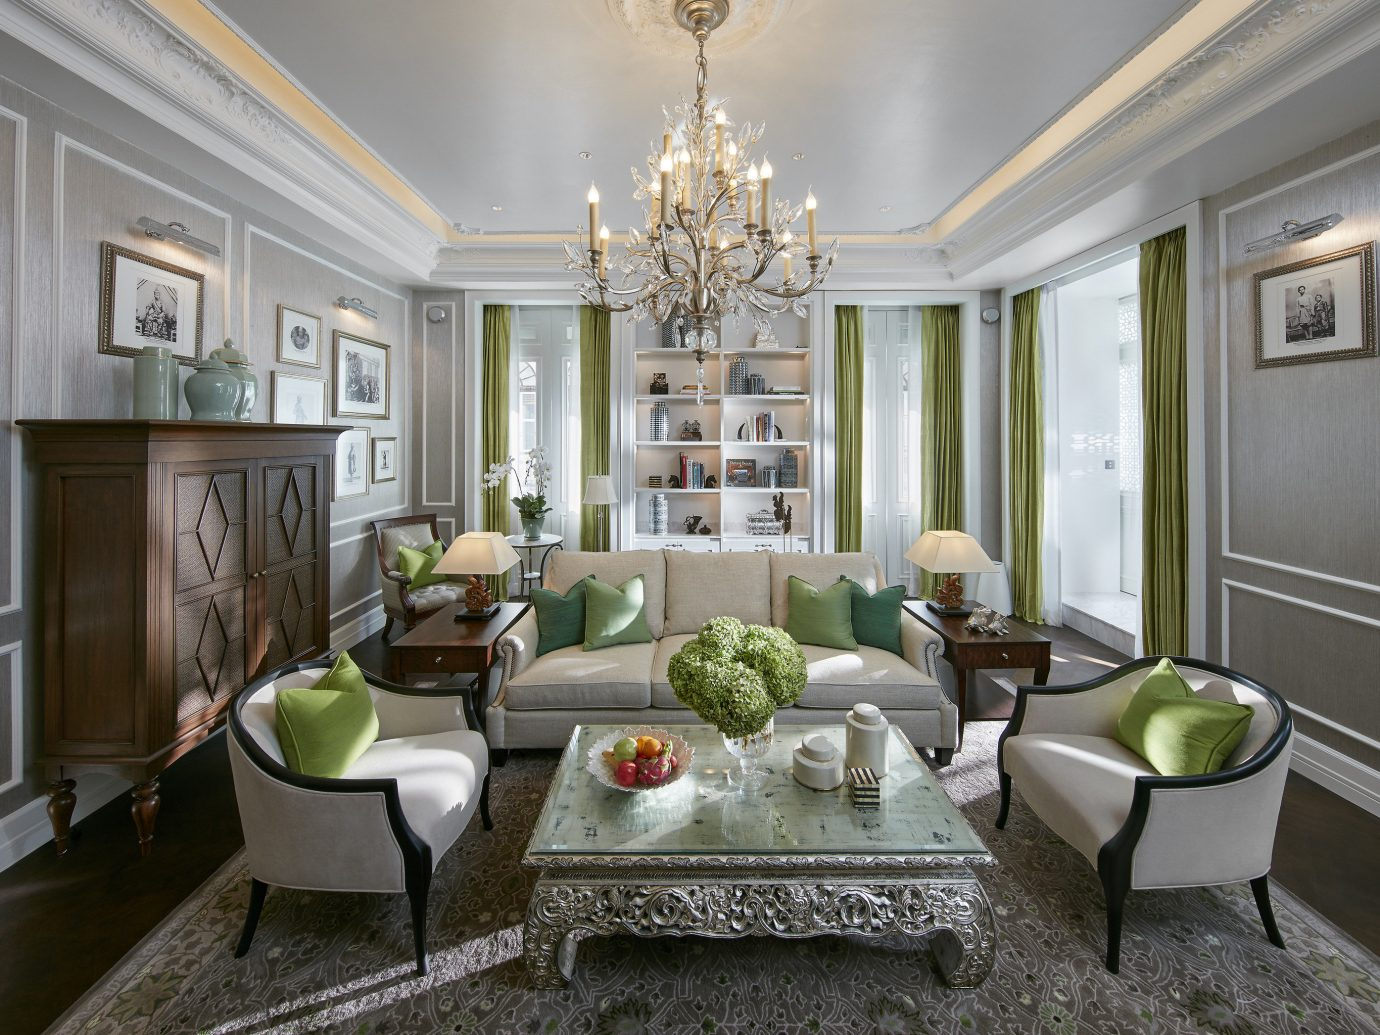 Hotels indoor floor dining room living room room property window estate home green Living interior design hardwood real estate cuisine classique mansion ceiling Design furniture farmhouse